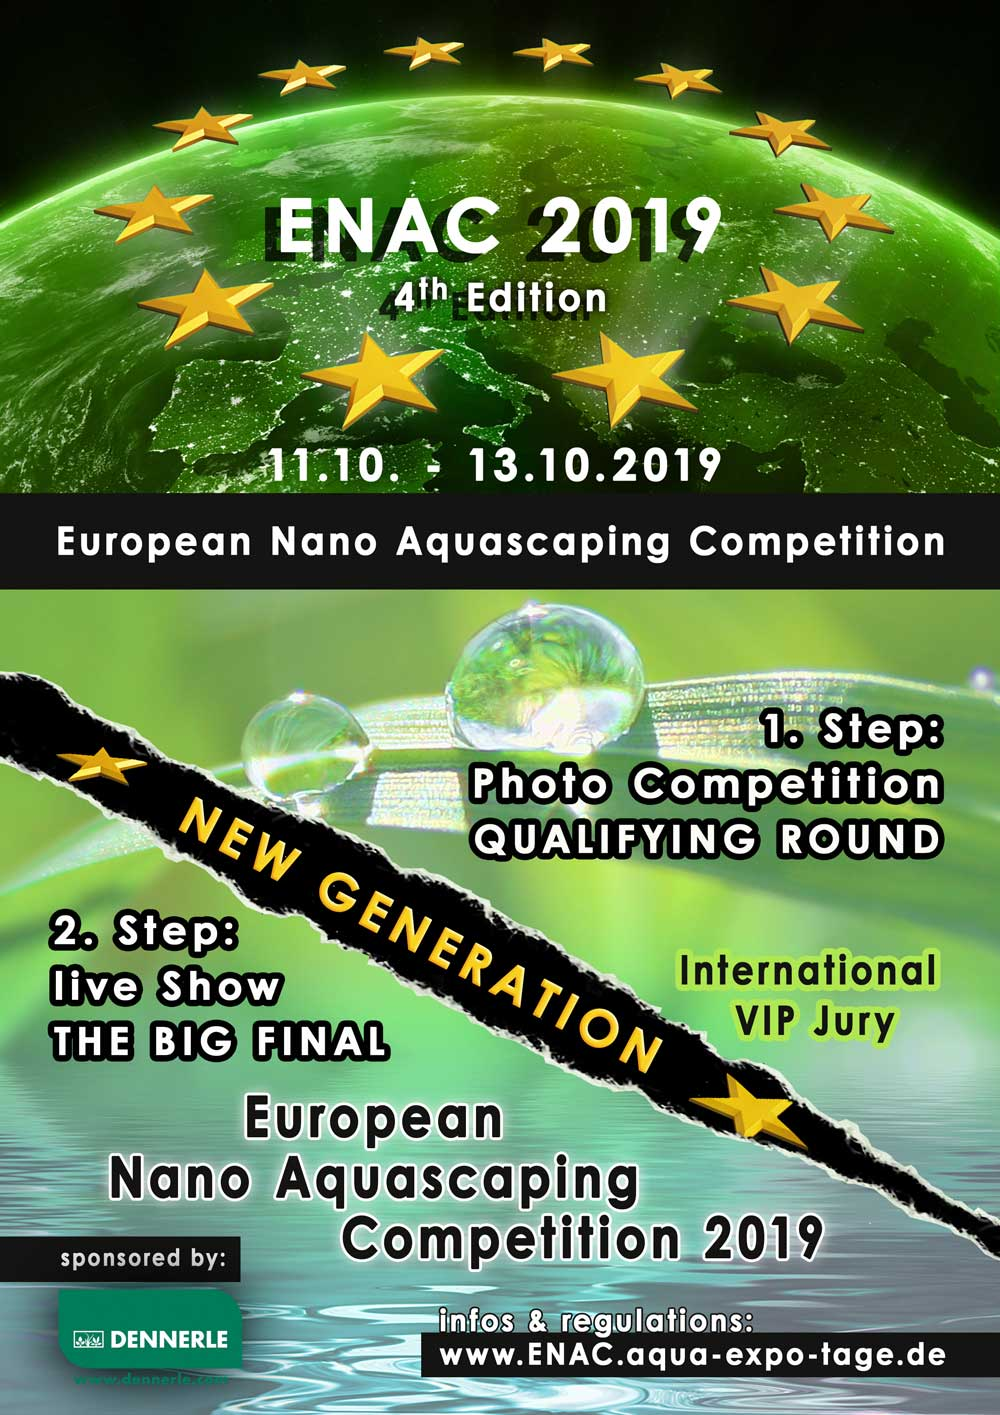 ENAC - European Nano Aquascaping Competition - 2019